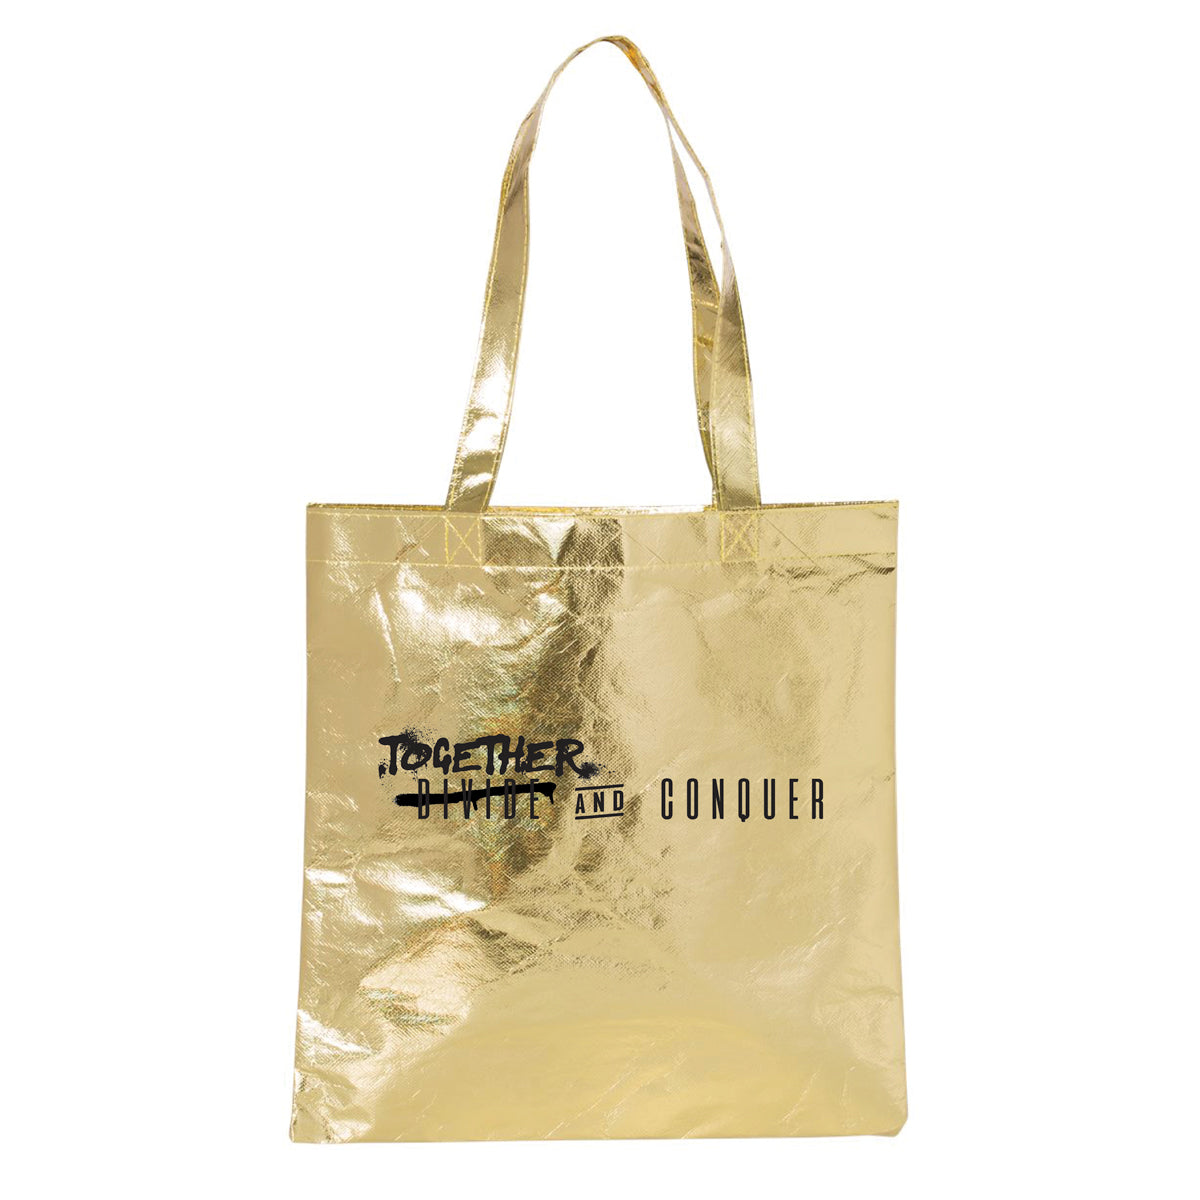 TOGETHER & CONQUER METALLIC GOLD TOTE